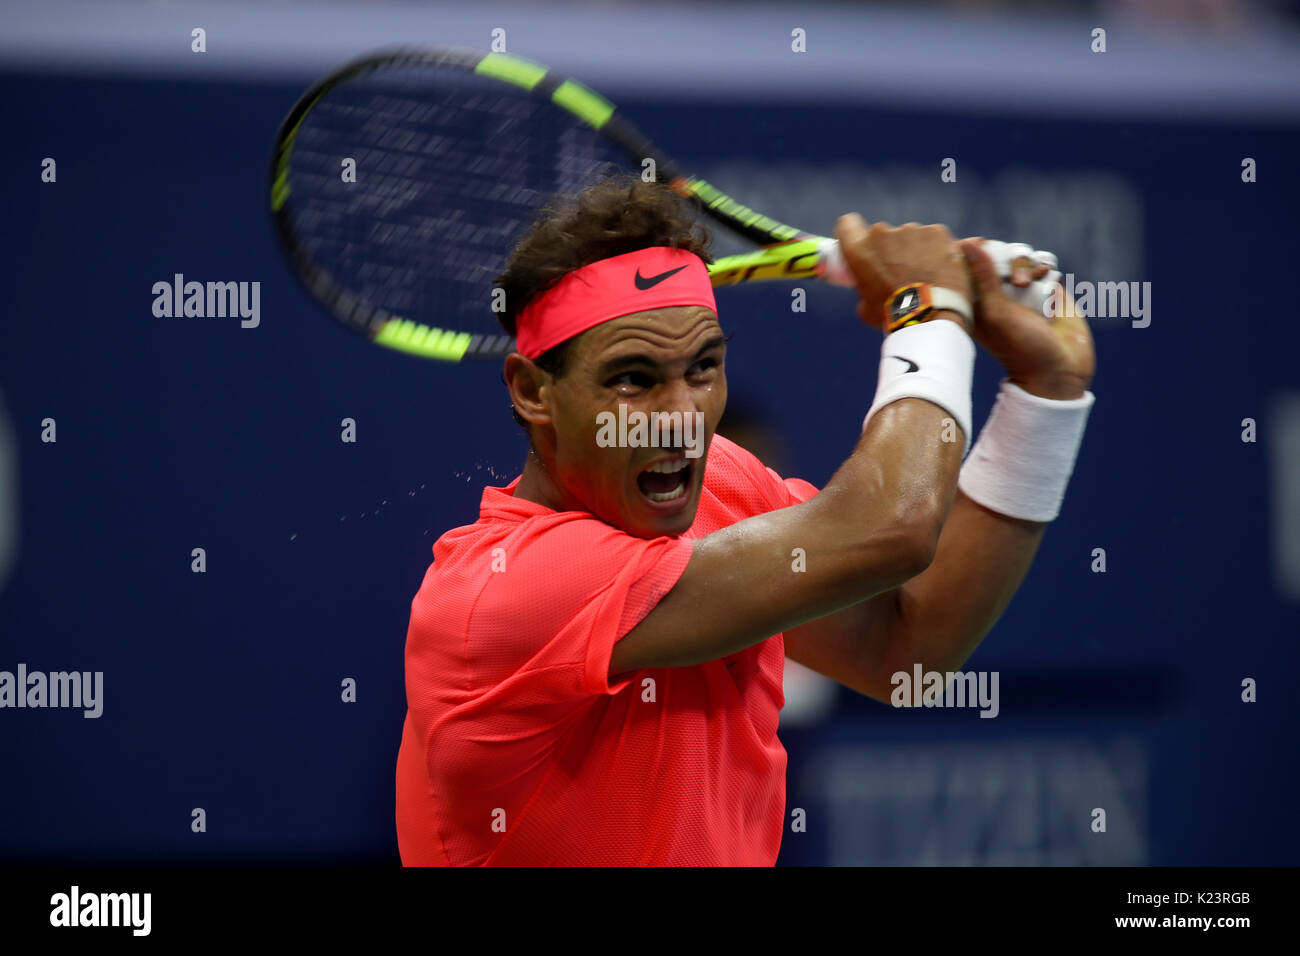 New York, United States. 29th Aug, 2017. US Open Tennis: New York, 29 August, 2017 - Rafael Nadal of Spain in action - Stock Image